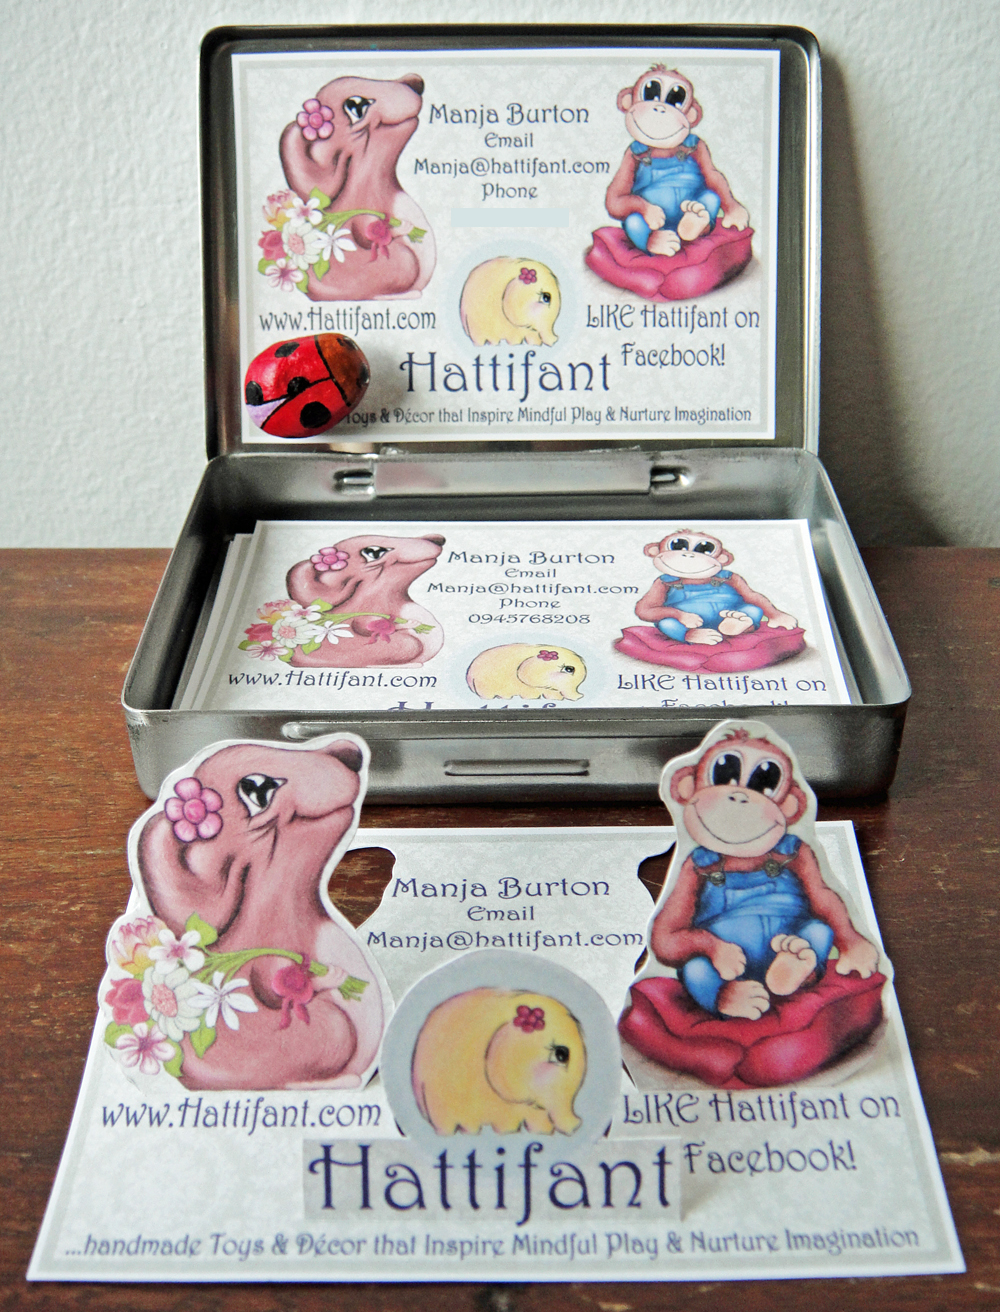 Hattifant's Business Card Design B